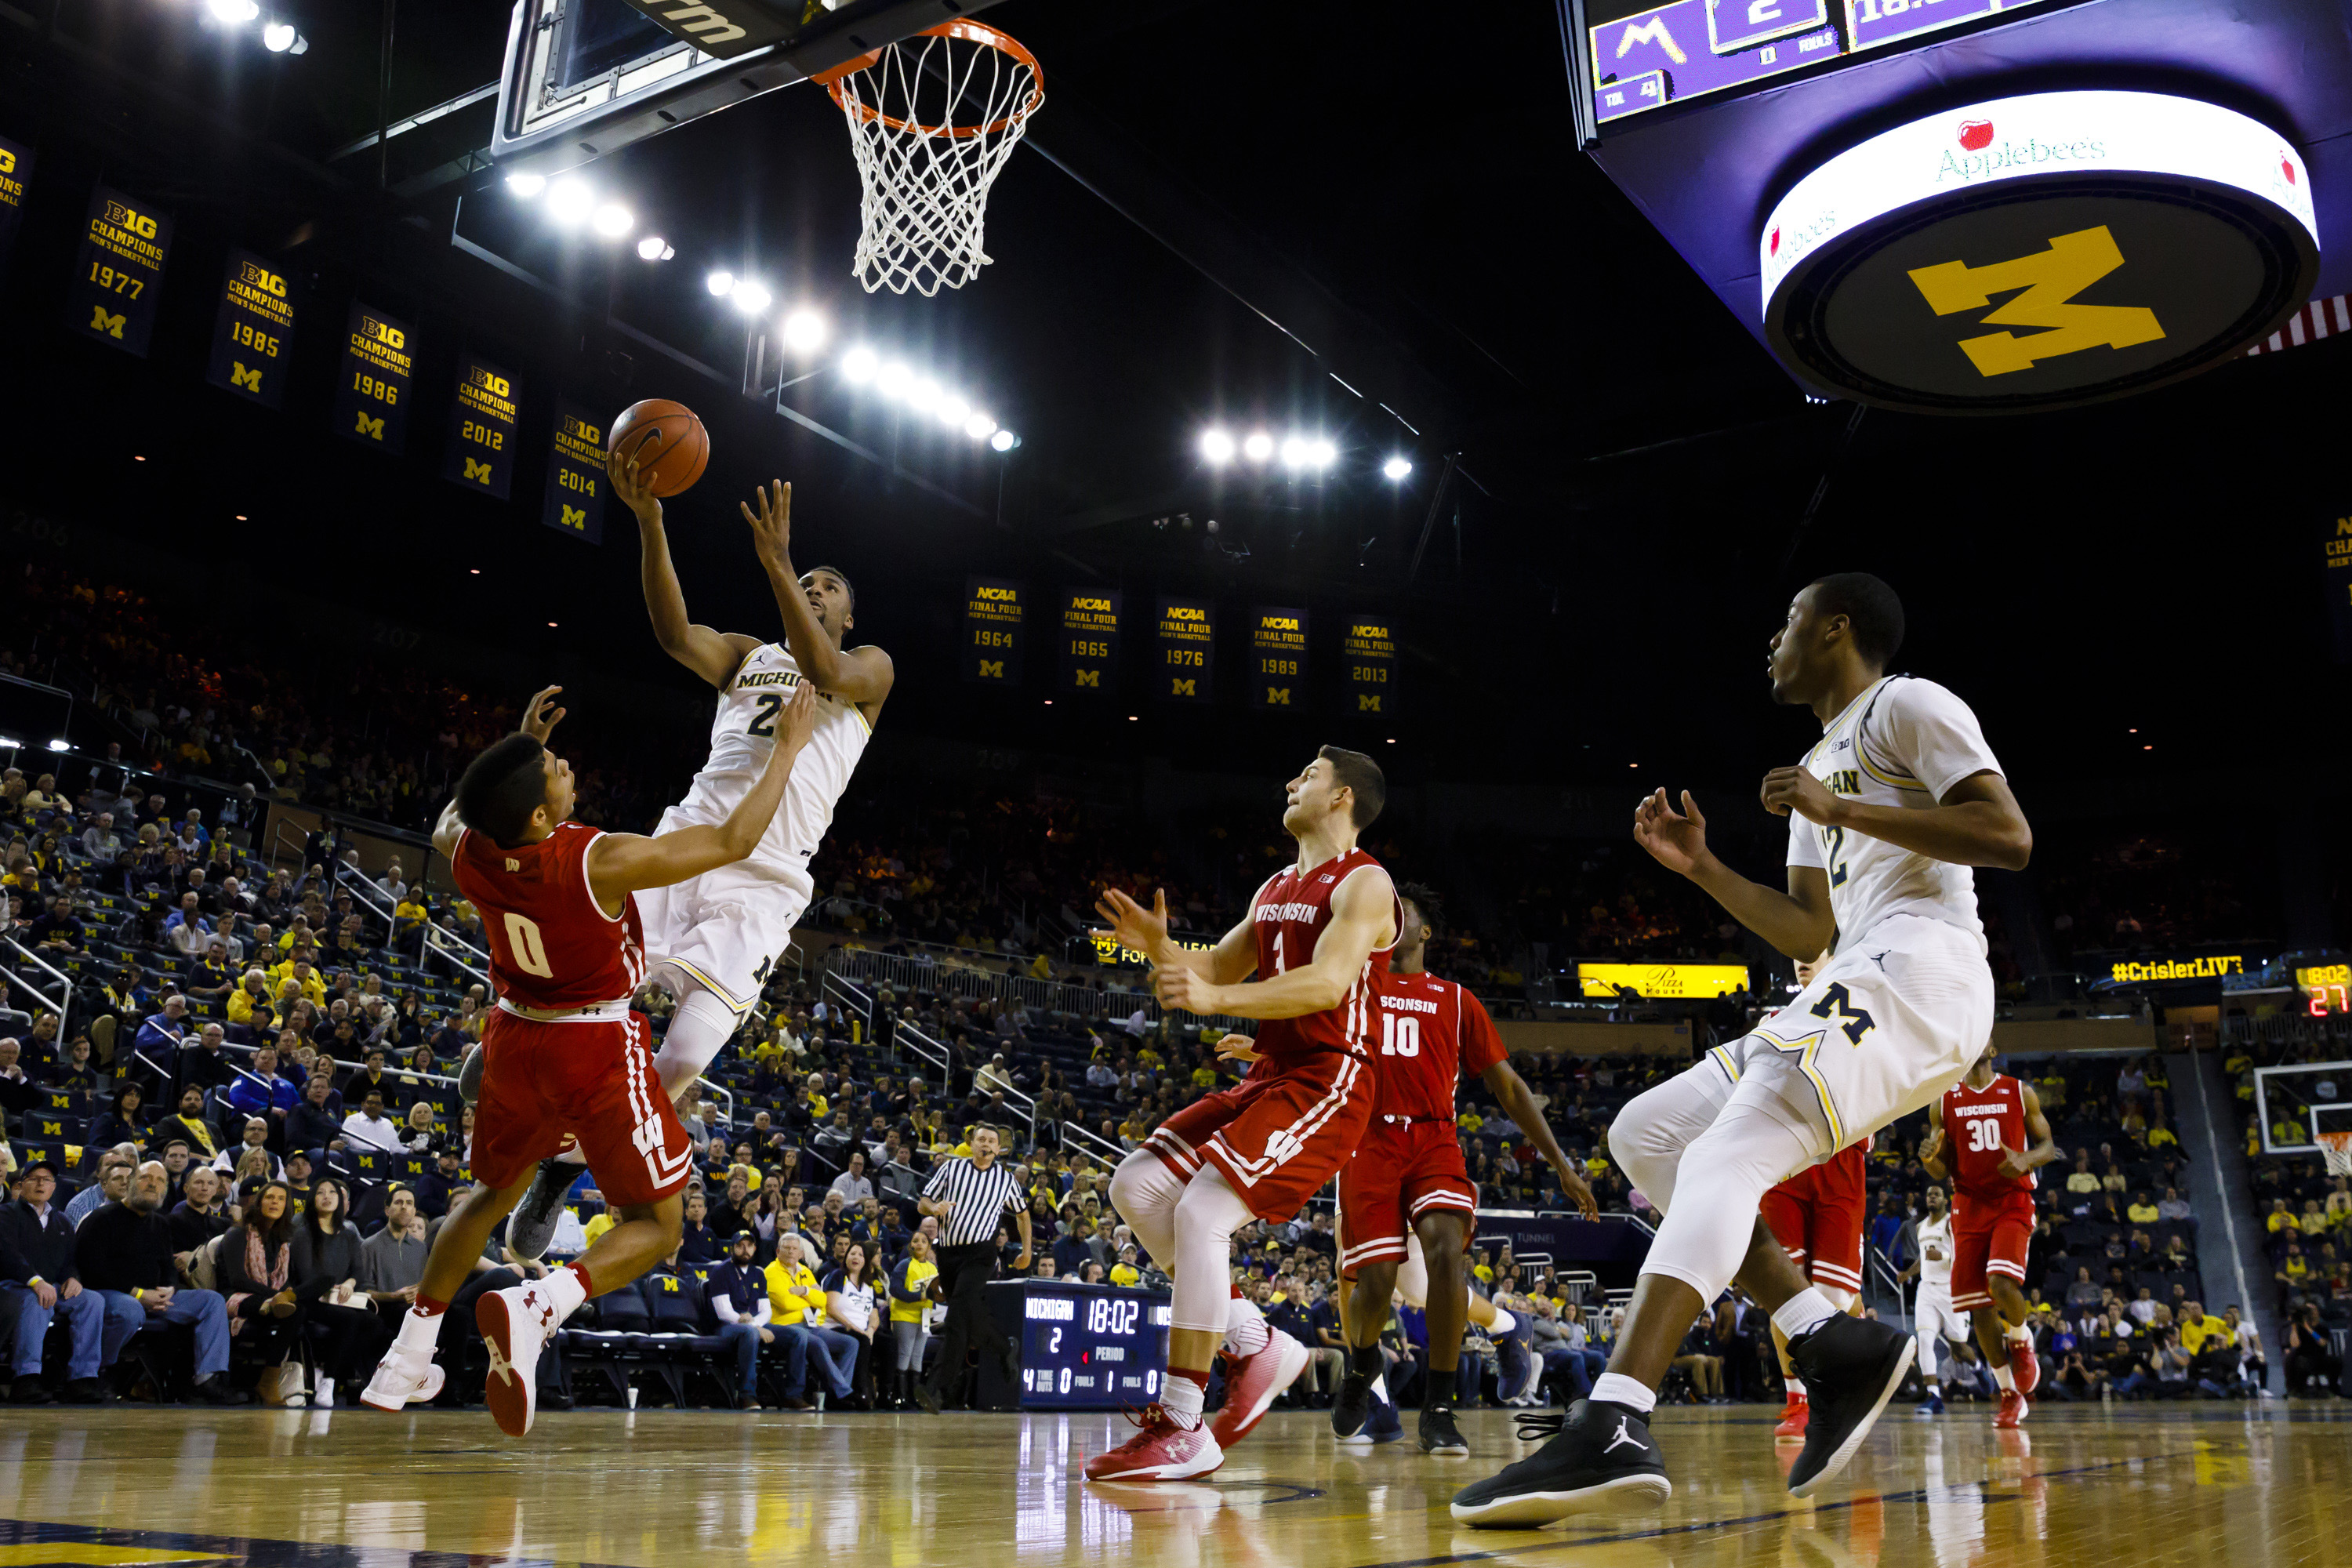 Feb 16, 2017; Ann Arbor, MI, USA; Michigan Wolverines guard Zak Irvin (21) goes to the basket defended by Wisconsin Badgers guard D'Mitrik Trice (0) in the first half at Crisler Center. Mandatory Credit: Rick Osentoski-USA TODAY Sports - RTSZ2DI